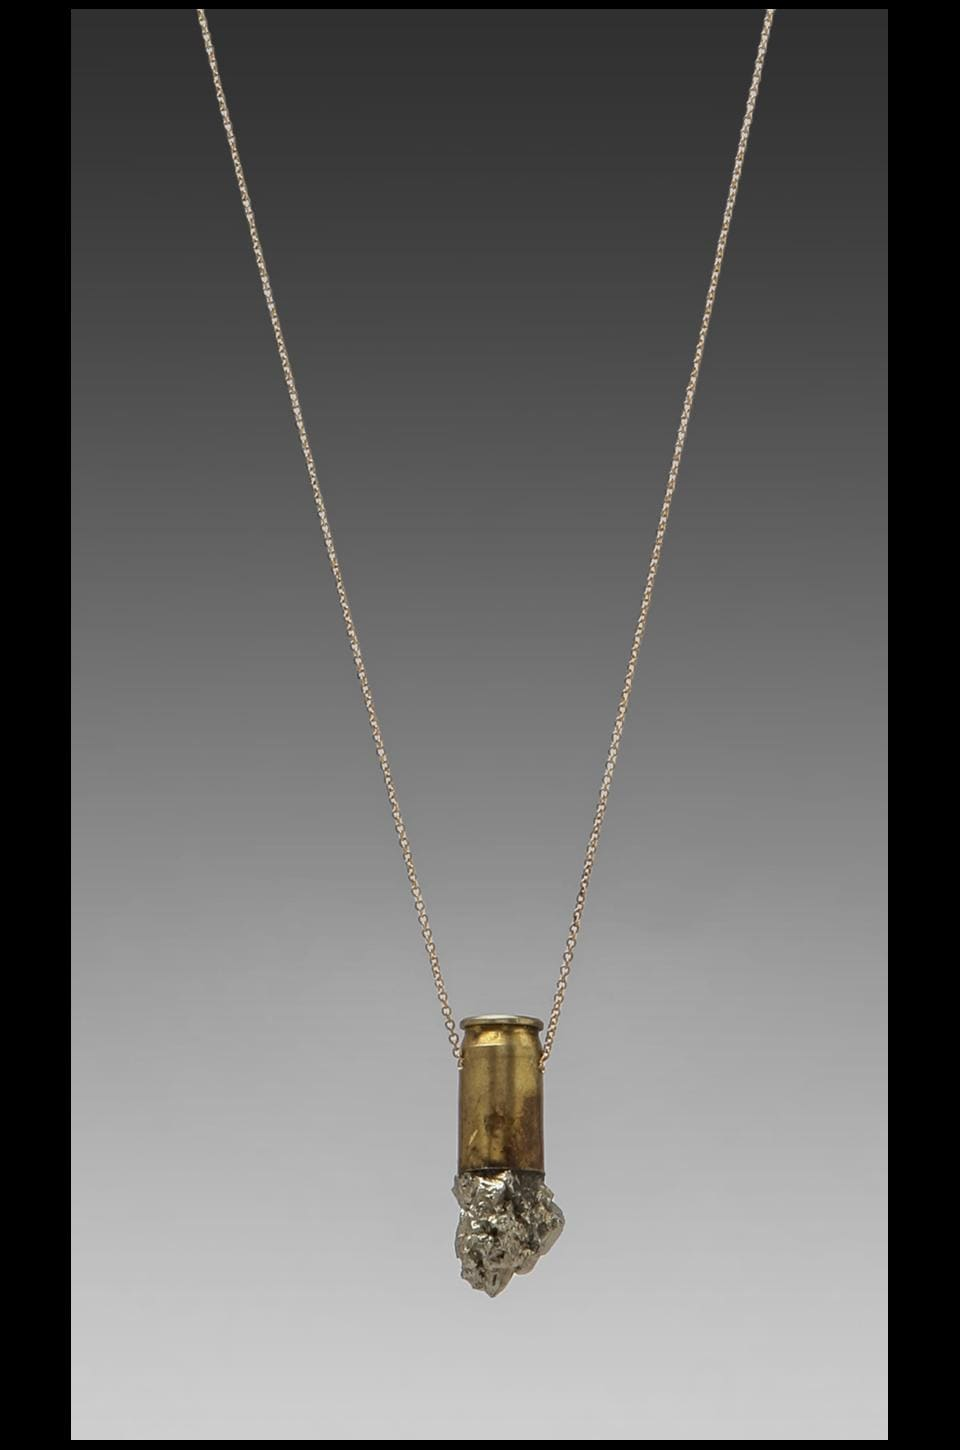 Unearthen Medium Pyrite Crystal Pendant on 14k Gold Chain